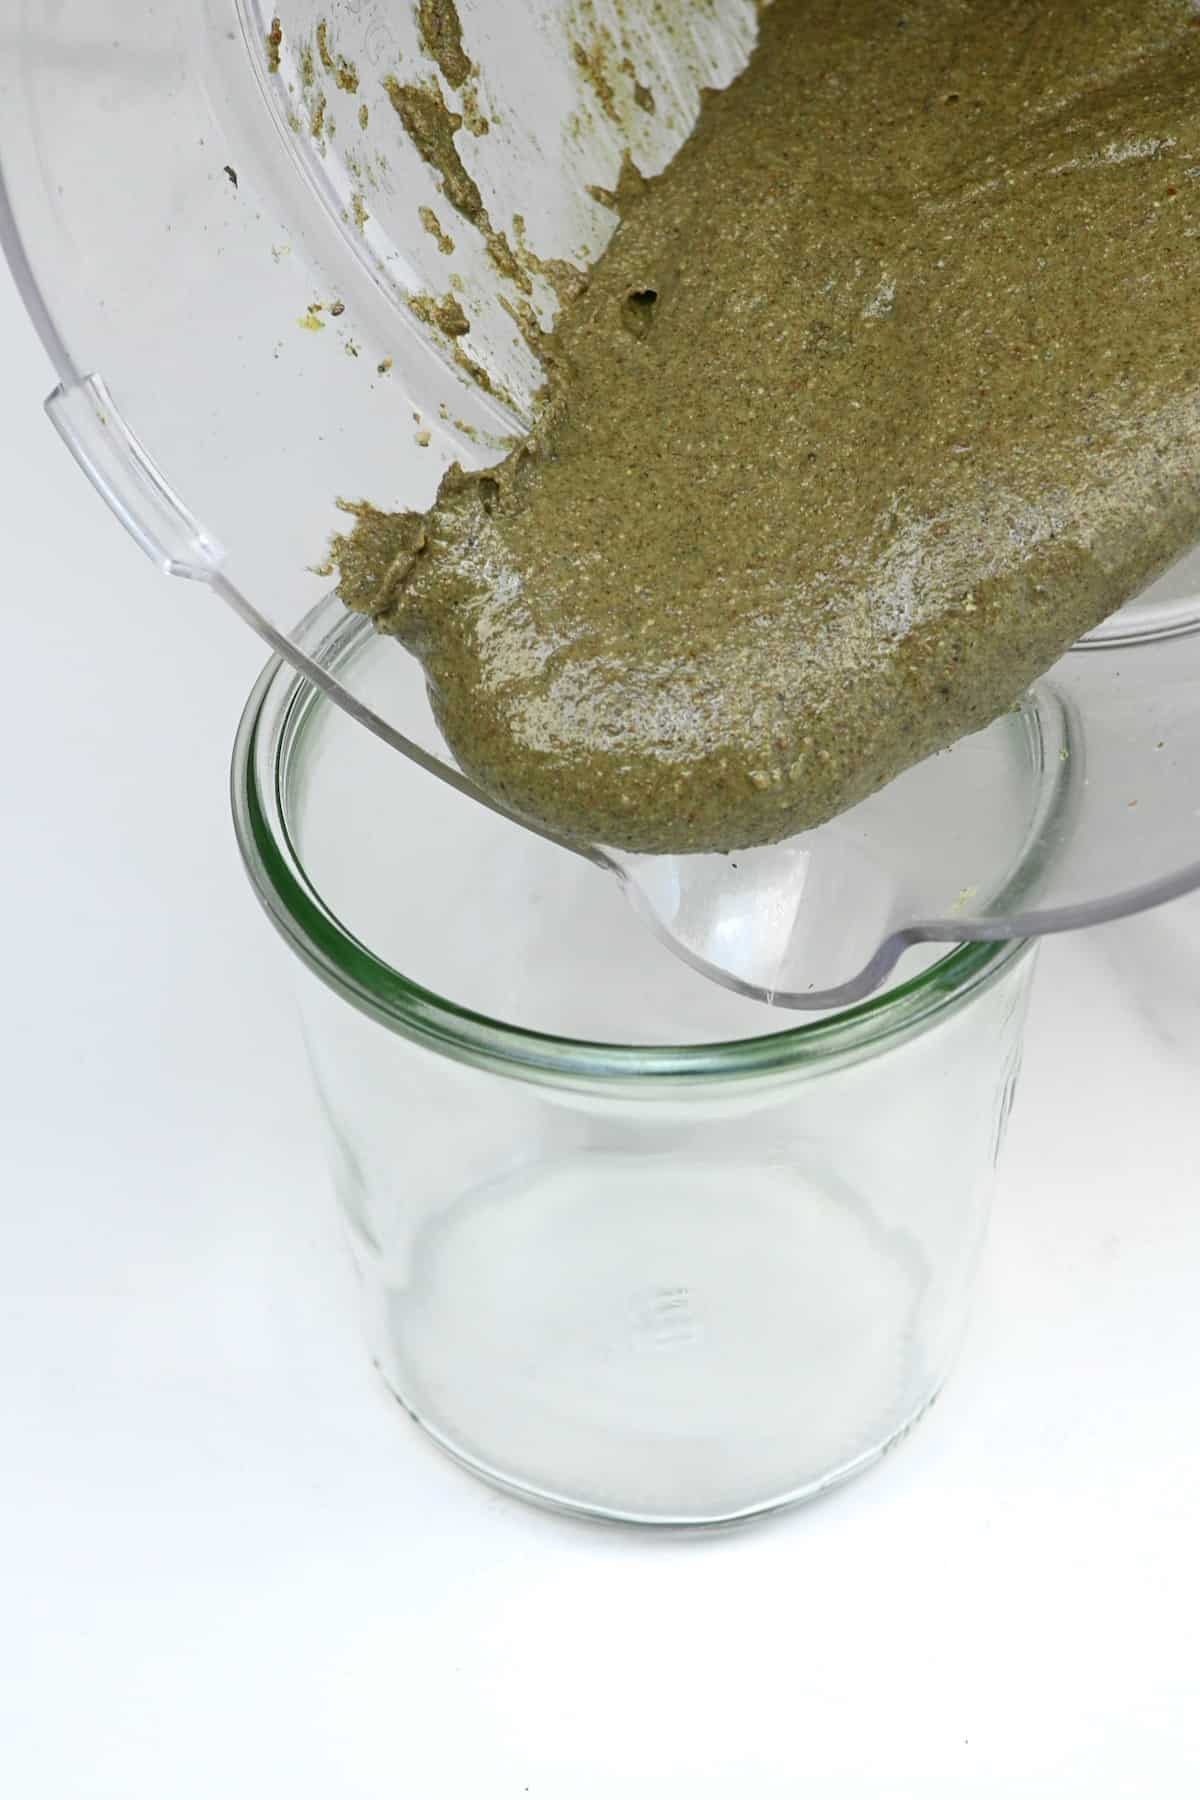 Pouring omega seed butter in a jar